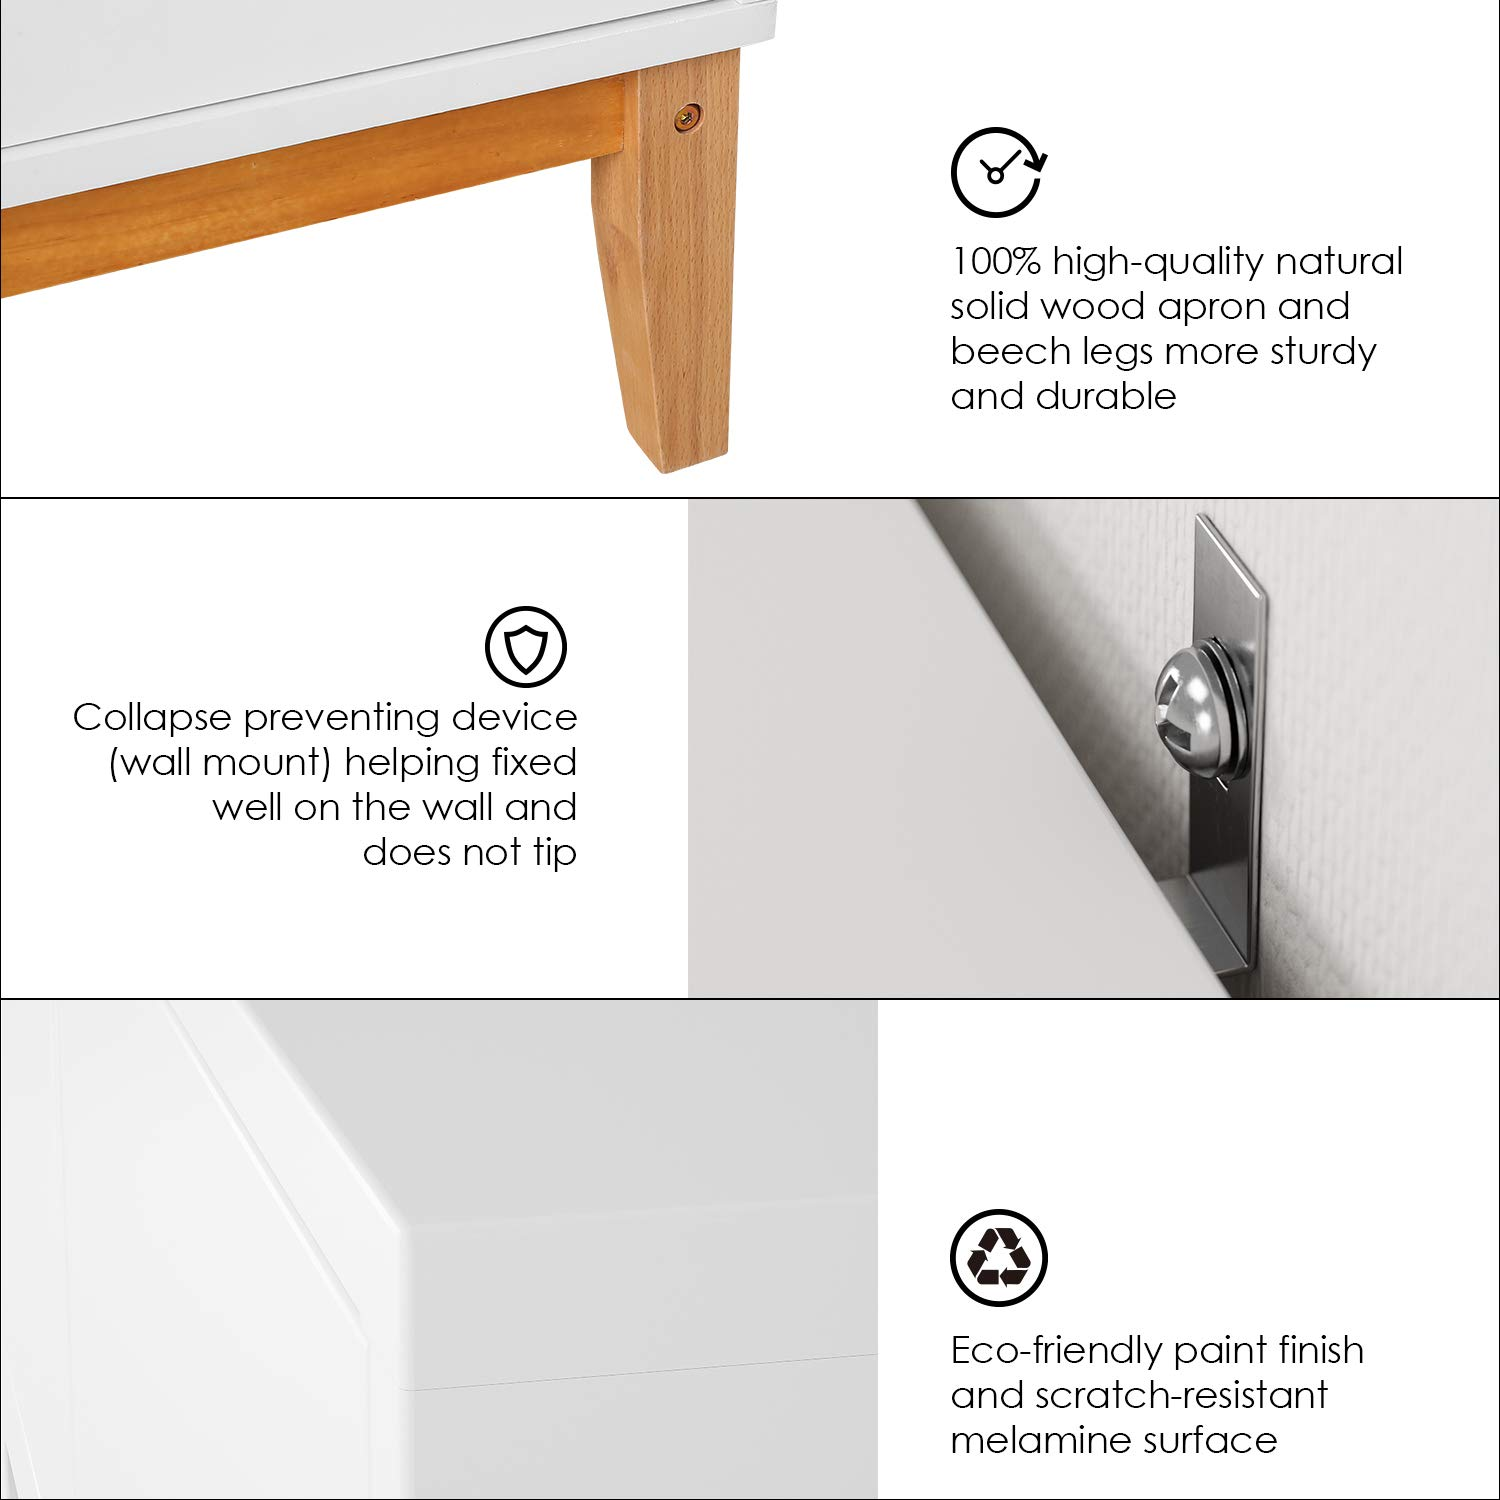 HOMECHO Floor Buffet Sideboard Storage Cabinet Freestanding Console Table Cupboard Chest 2 Door, 3 Drawers and 2 Inside Adjustment Shelf for Hallway, Living Room and Kitchen White Color HMC-MD-004 by HOMECHO (Image #5)